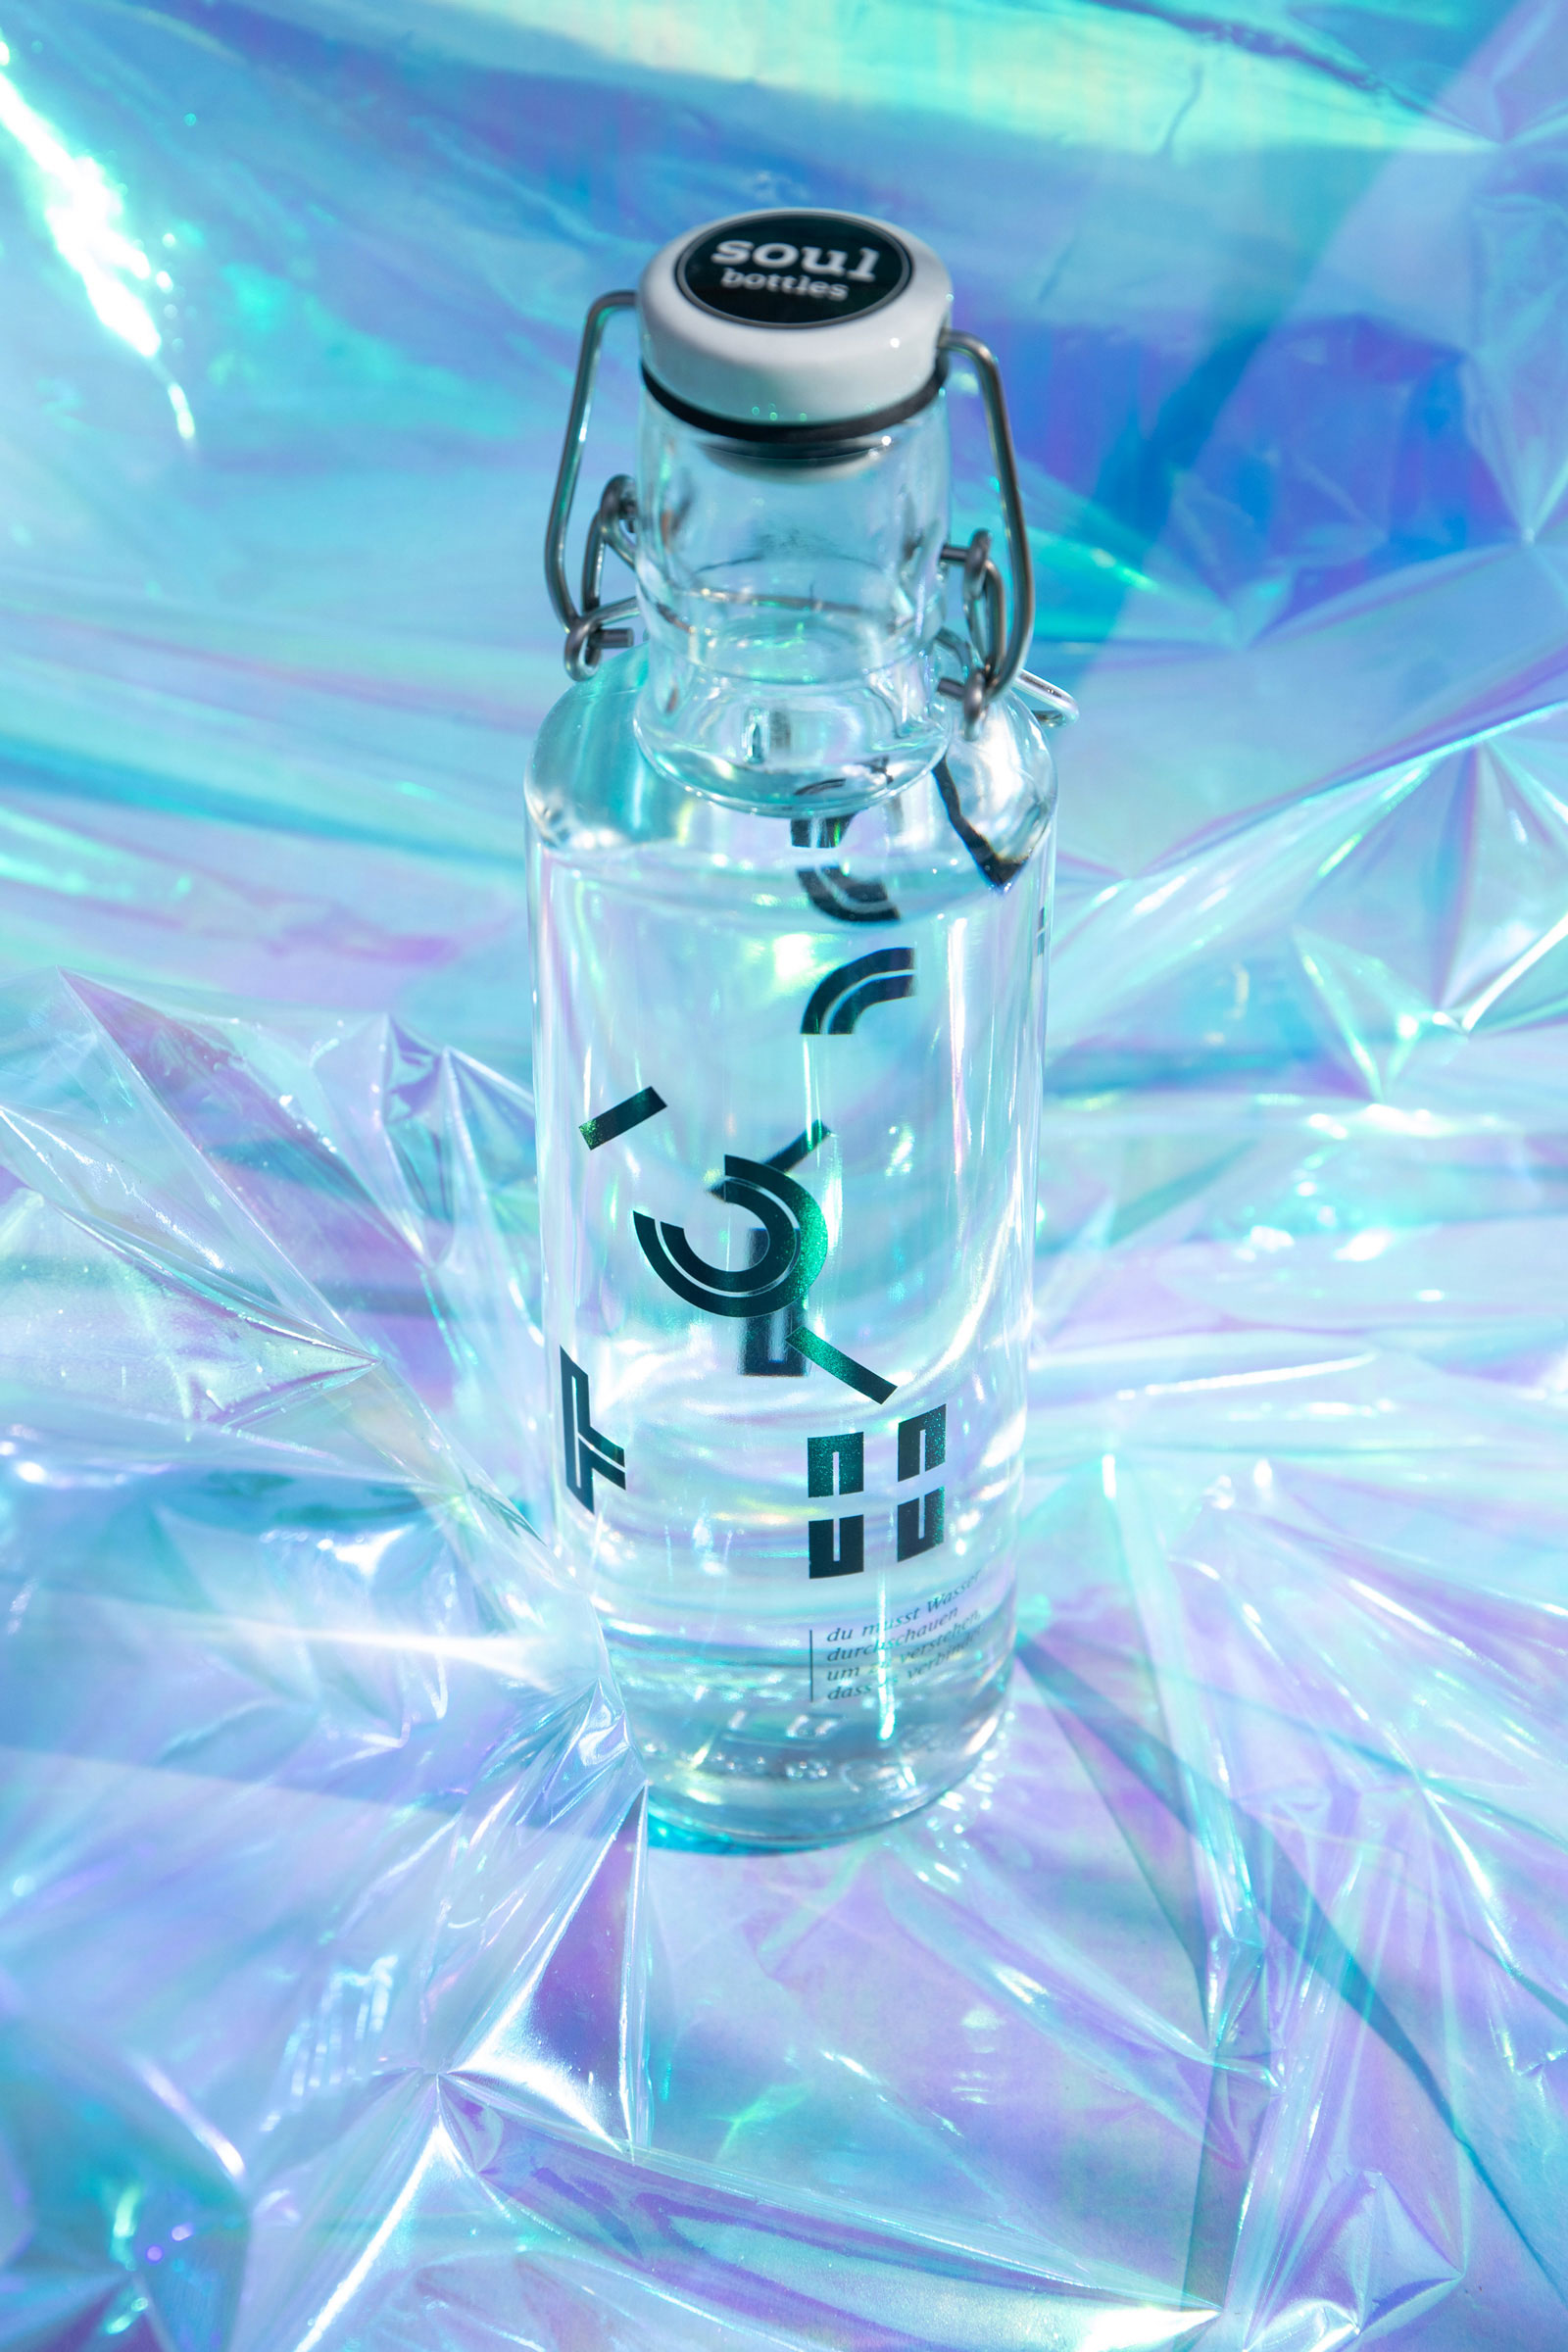 artistic photography of the bottle